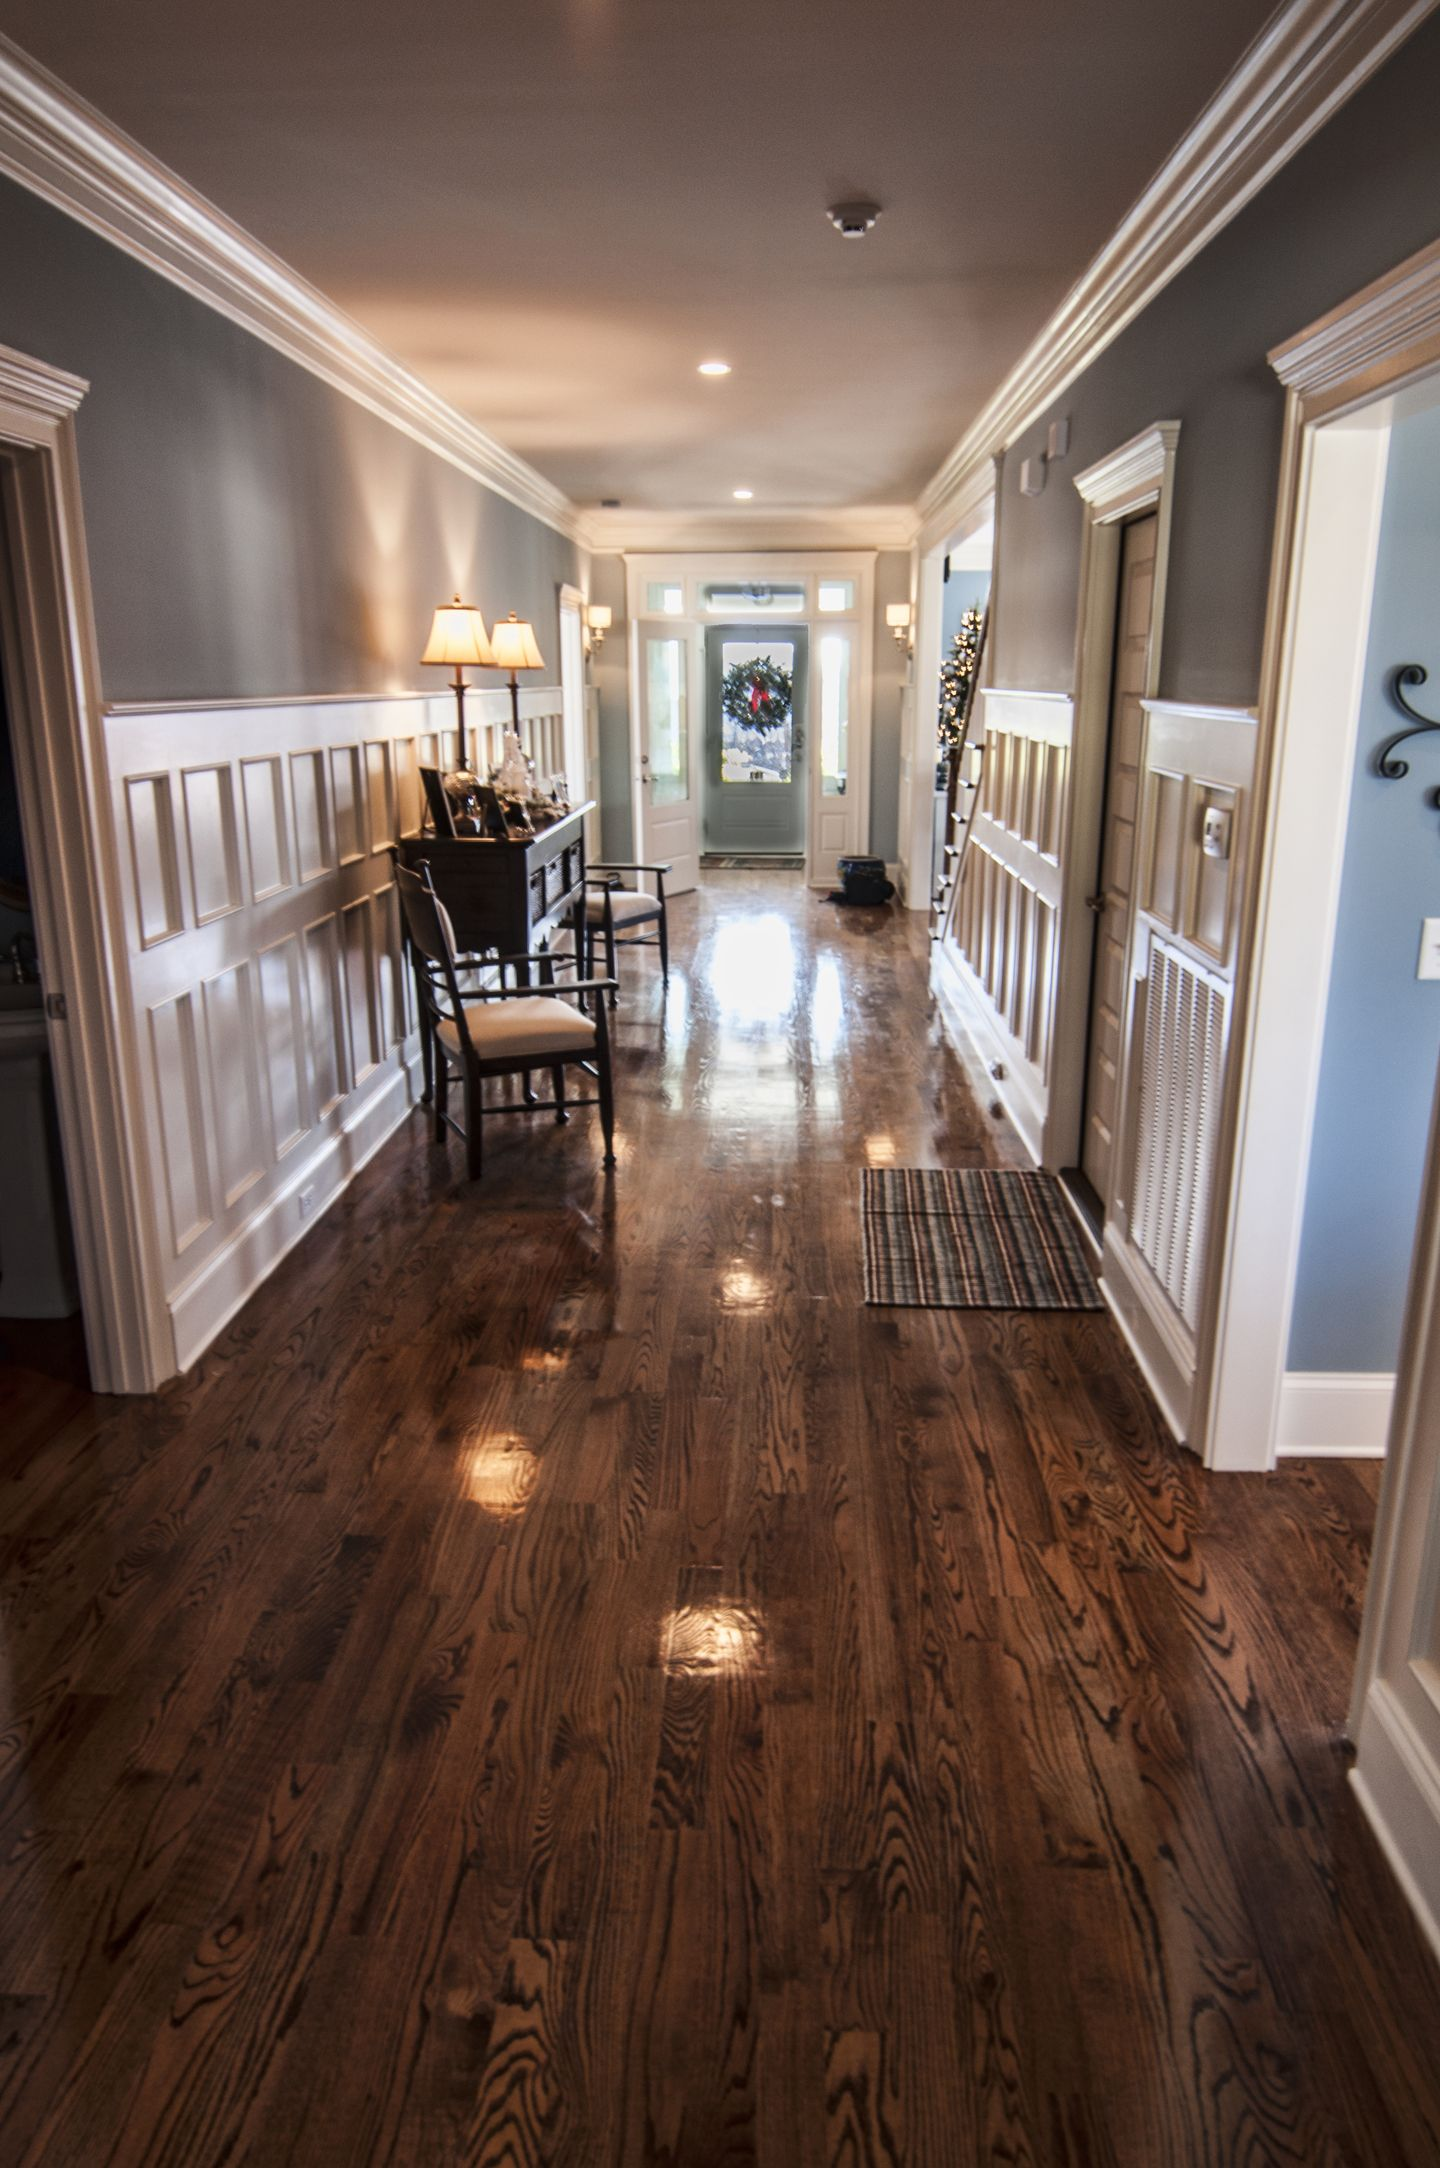 Entryway with dark wood floors, blue walls, and white trim